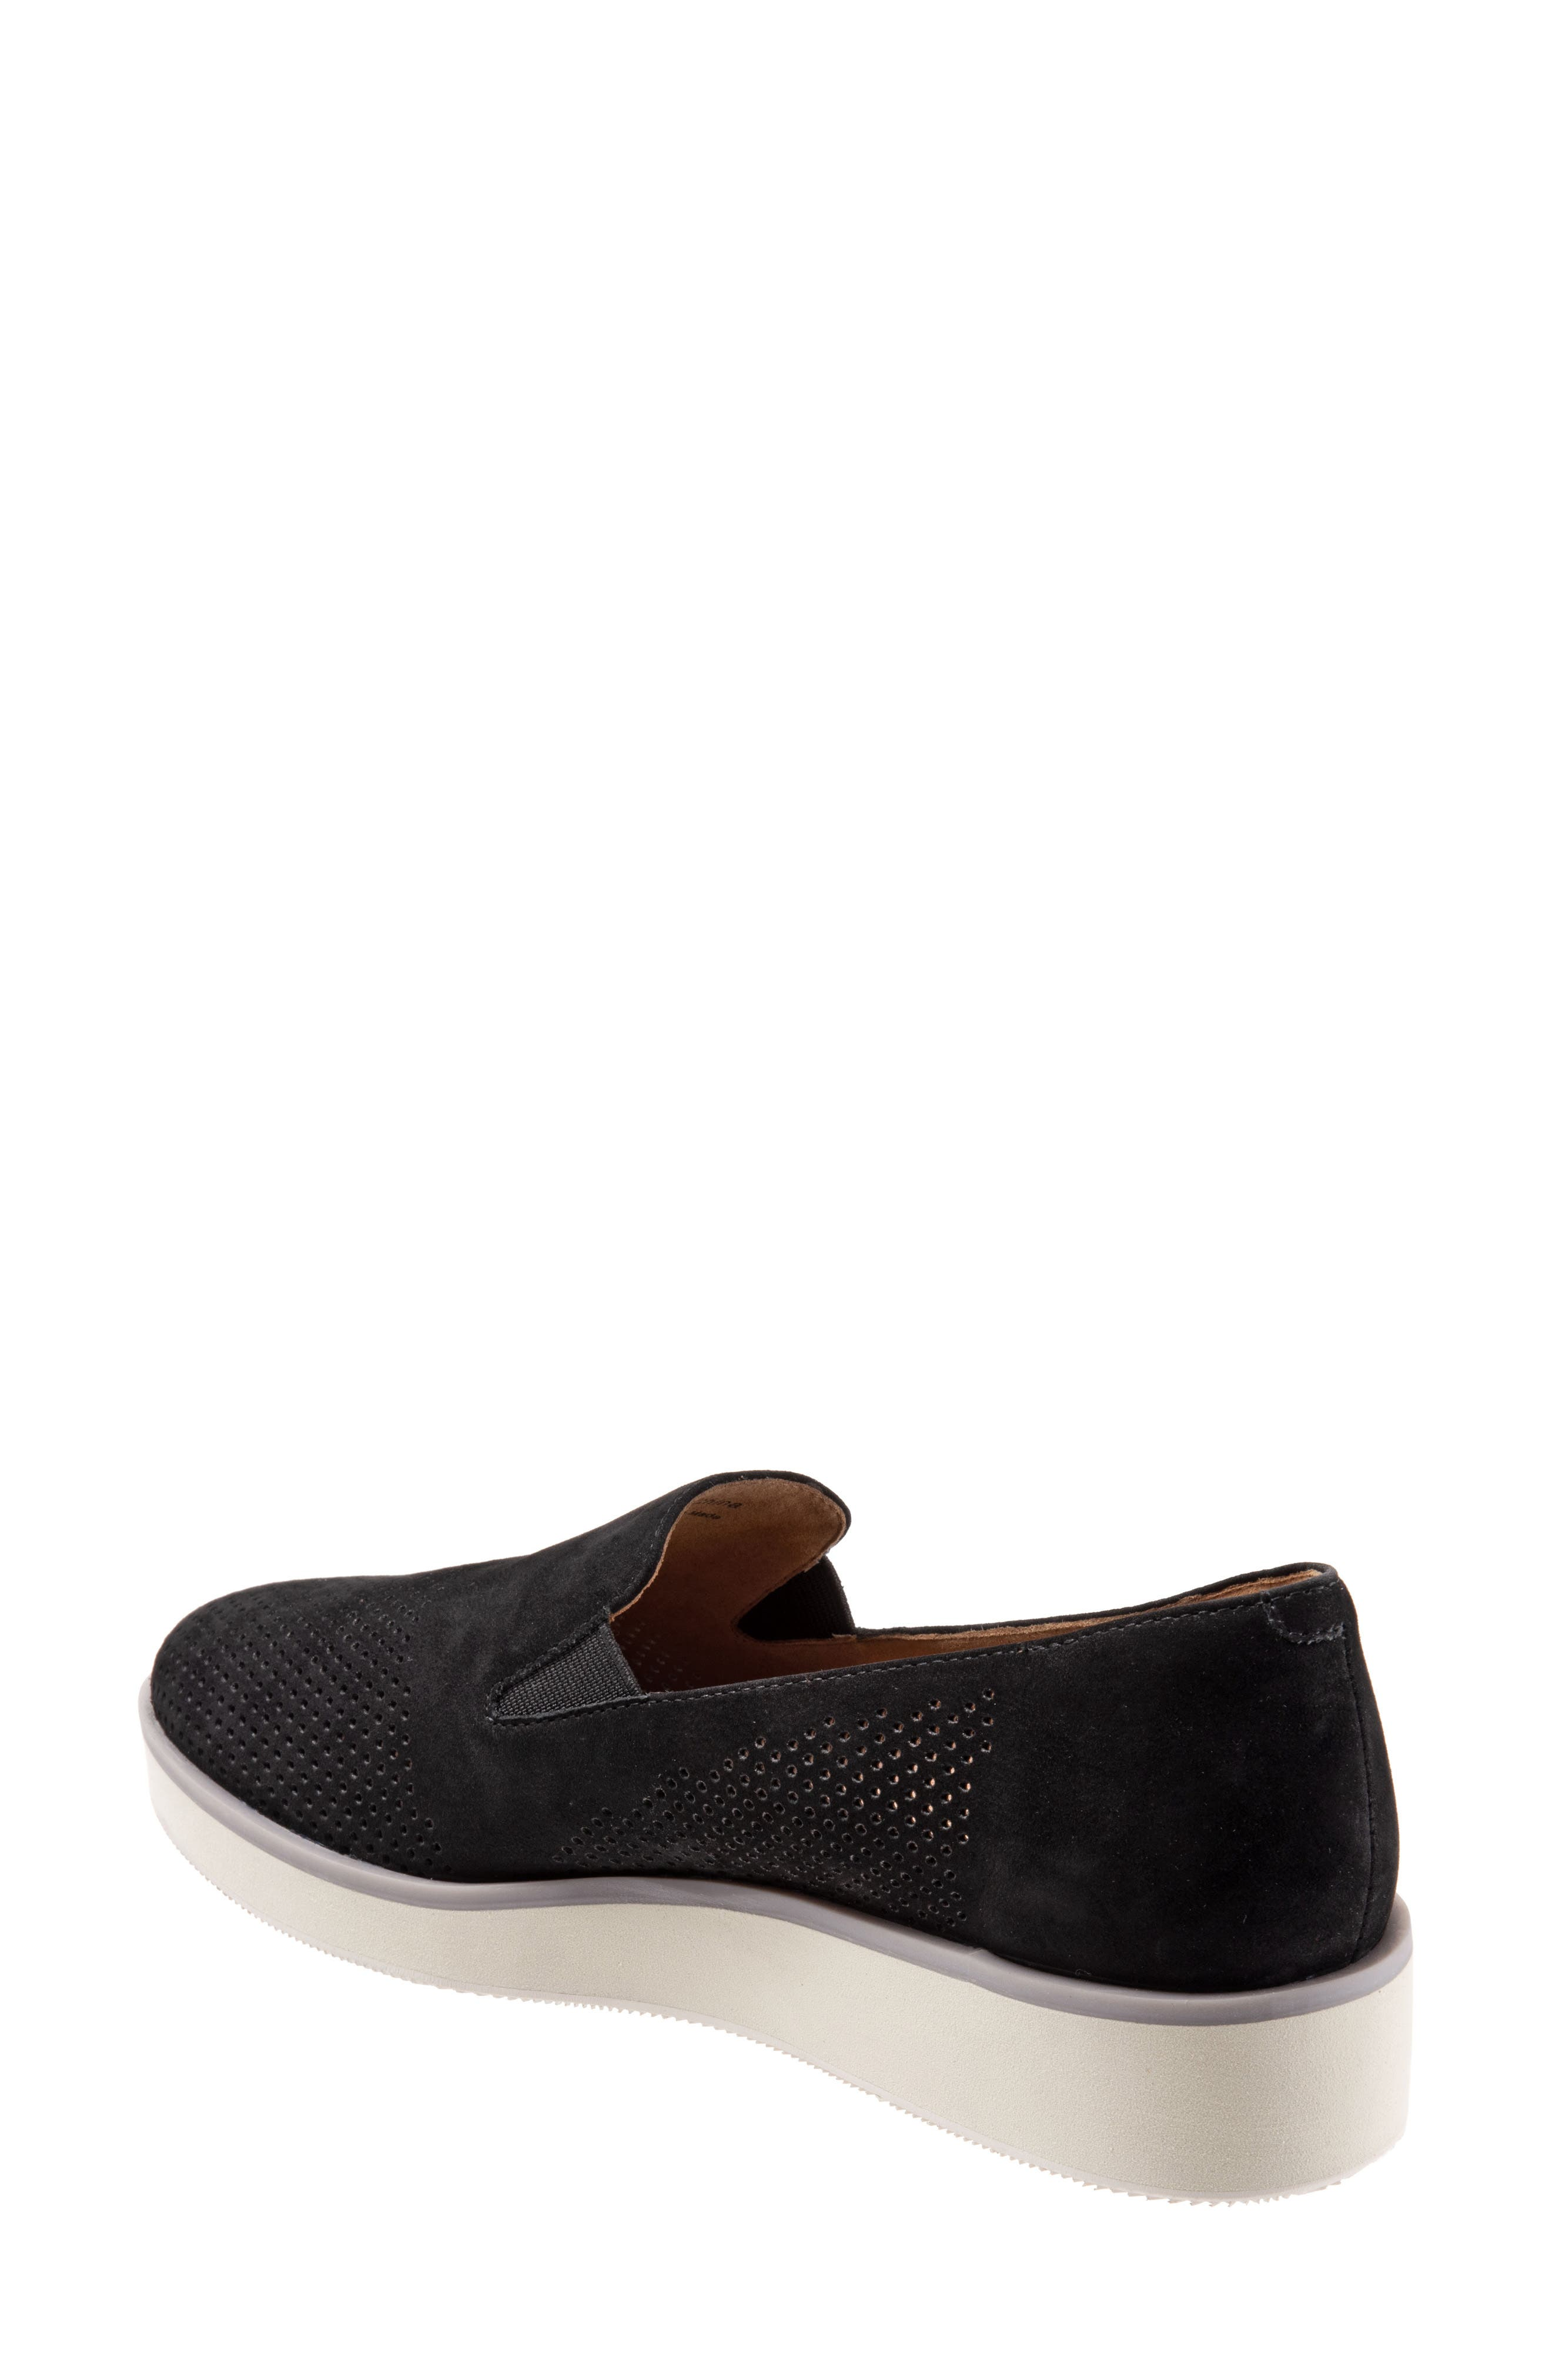 SOFTWALK<SUP>®</SUP>, Whistle Slip-On, Alternate thumbnail 2, color, BLACK/ BLACK LEATHER